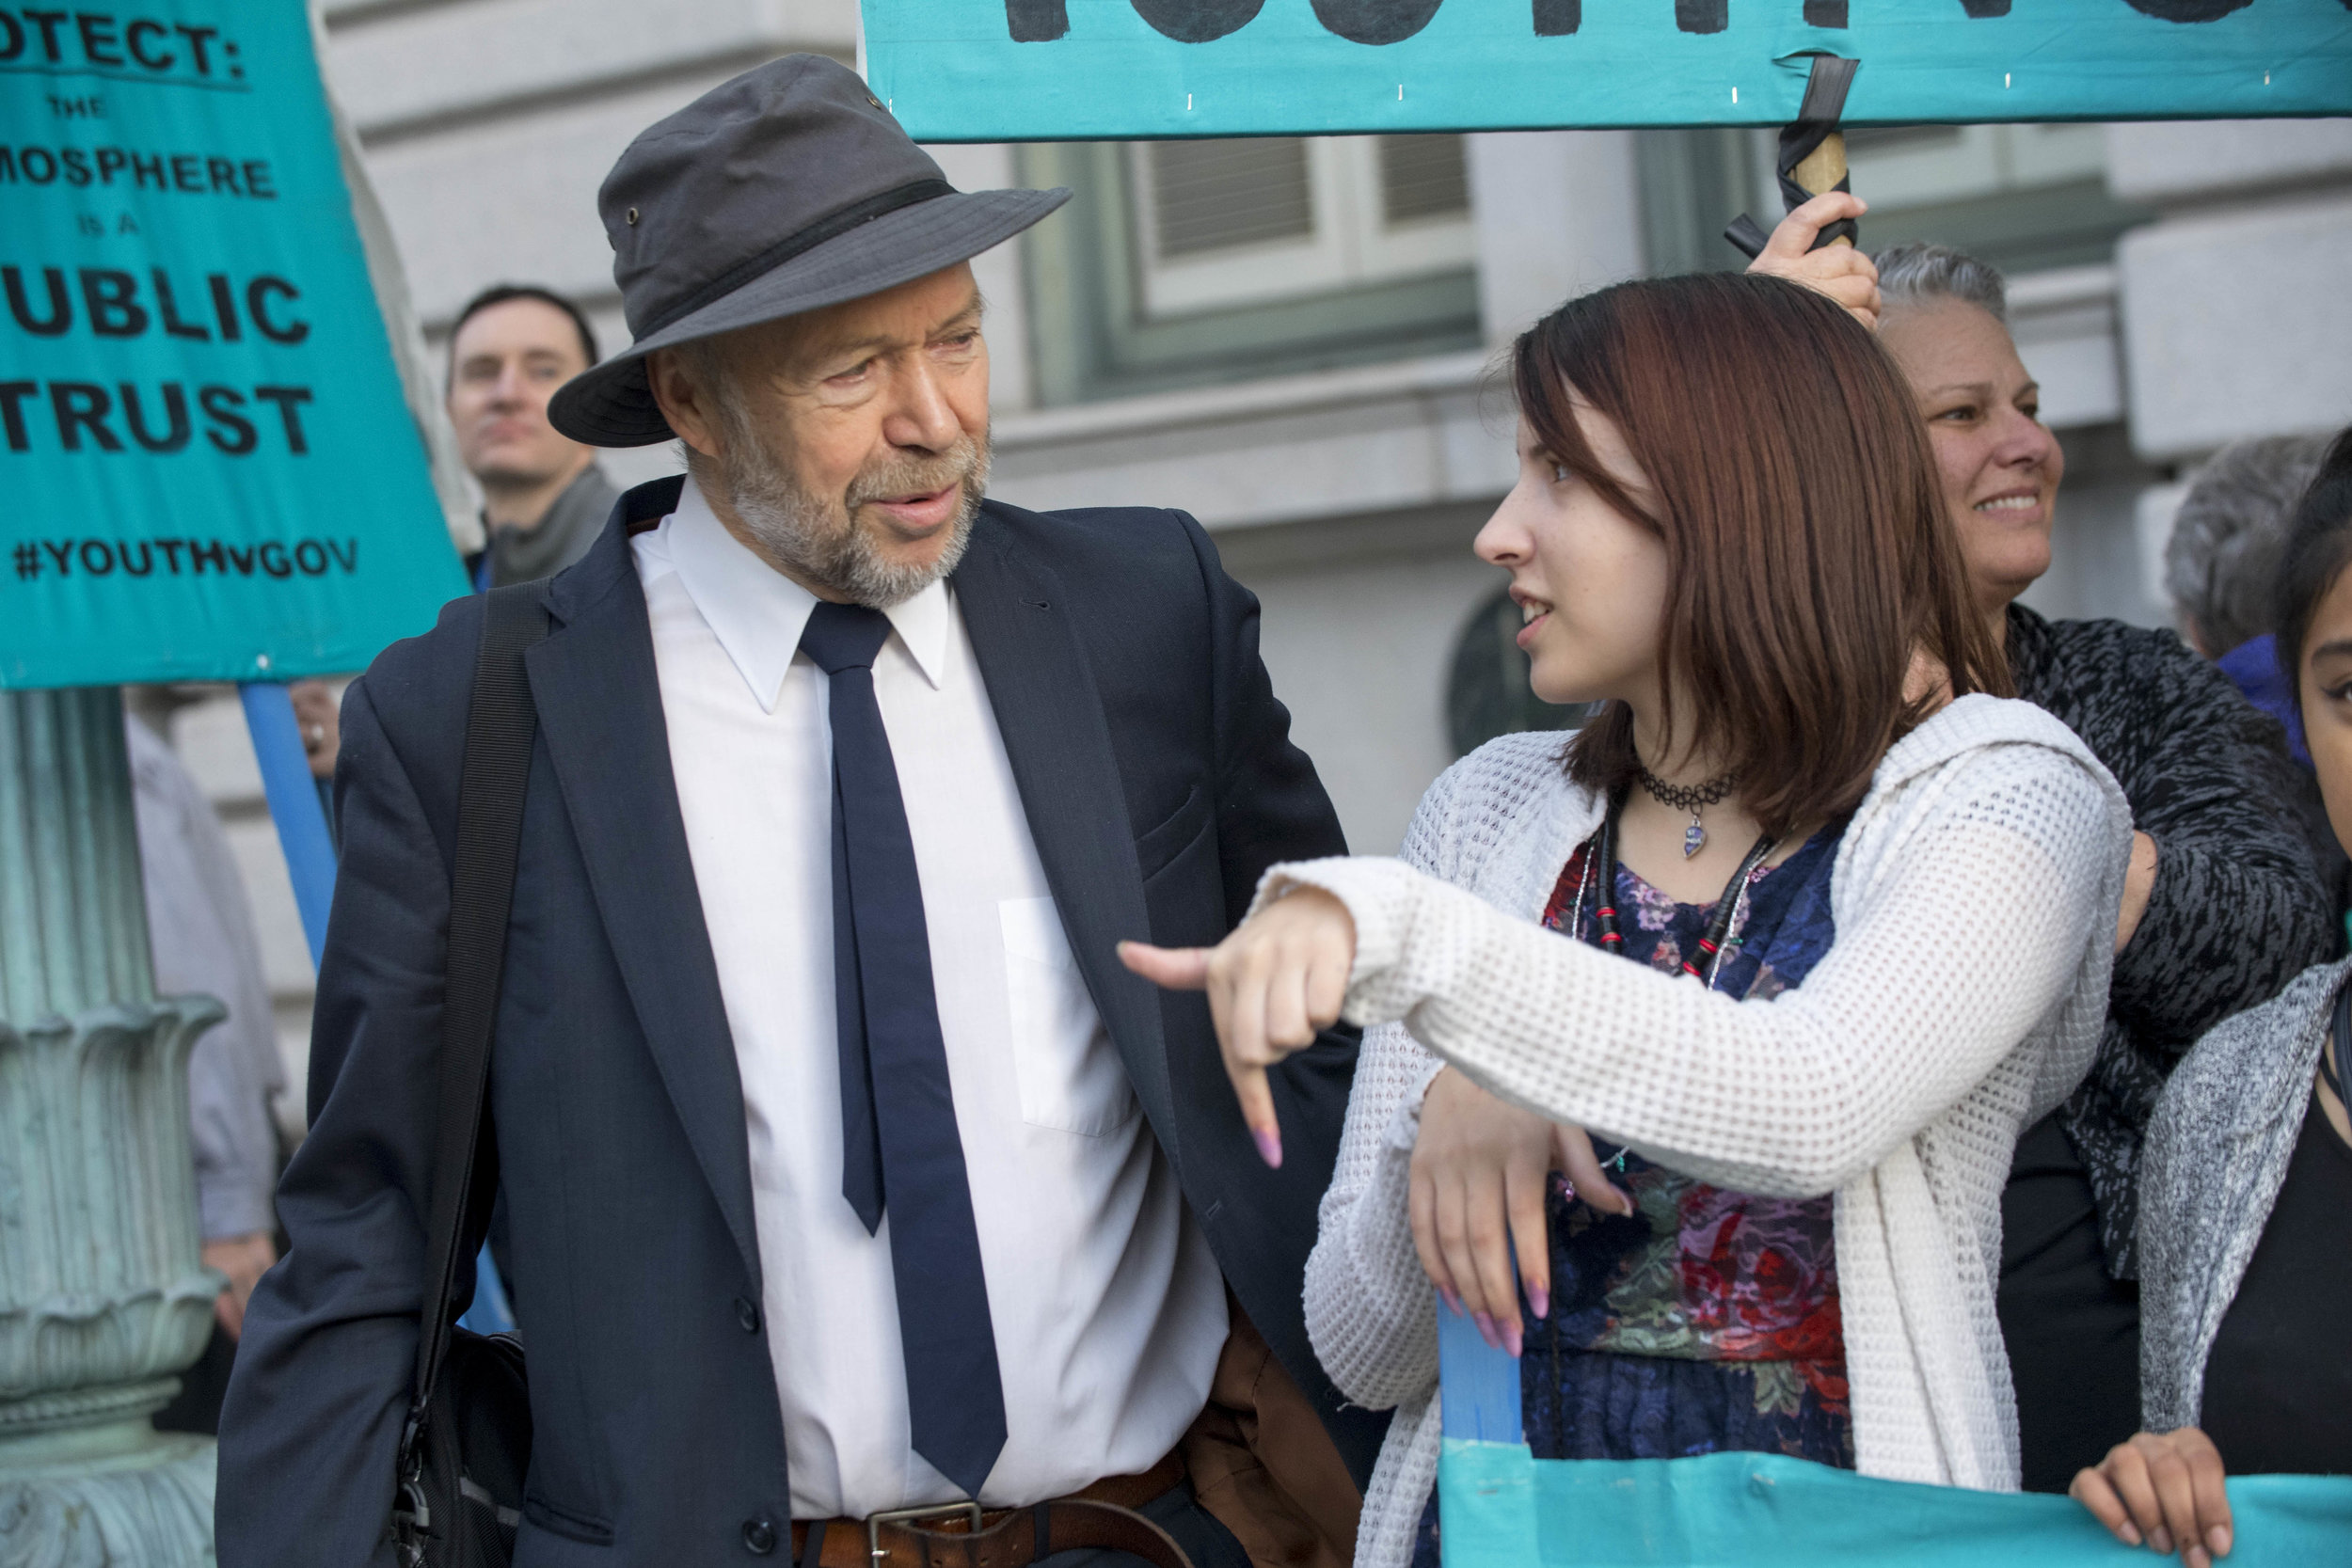 Jayden (right) with Dr. James Hansen (left) outside the 9th Circuit during a rally before a hearing. (Photo: Robin Loznak)